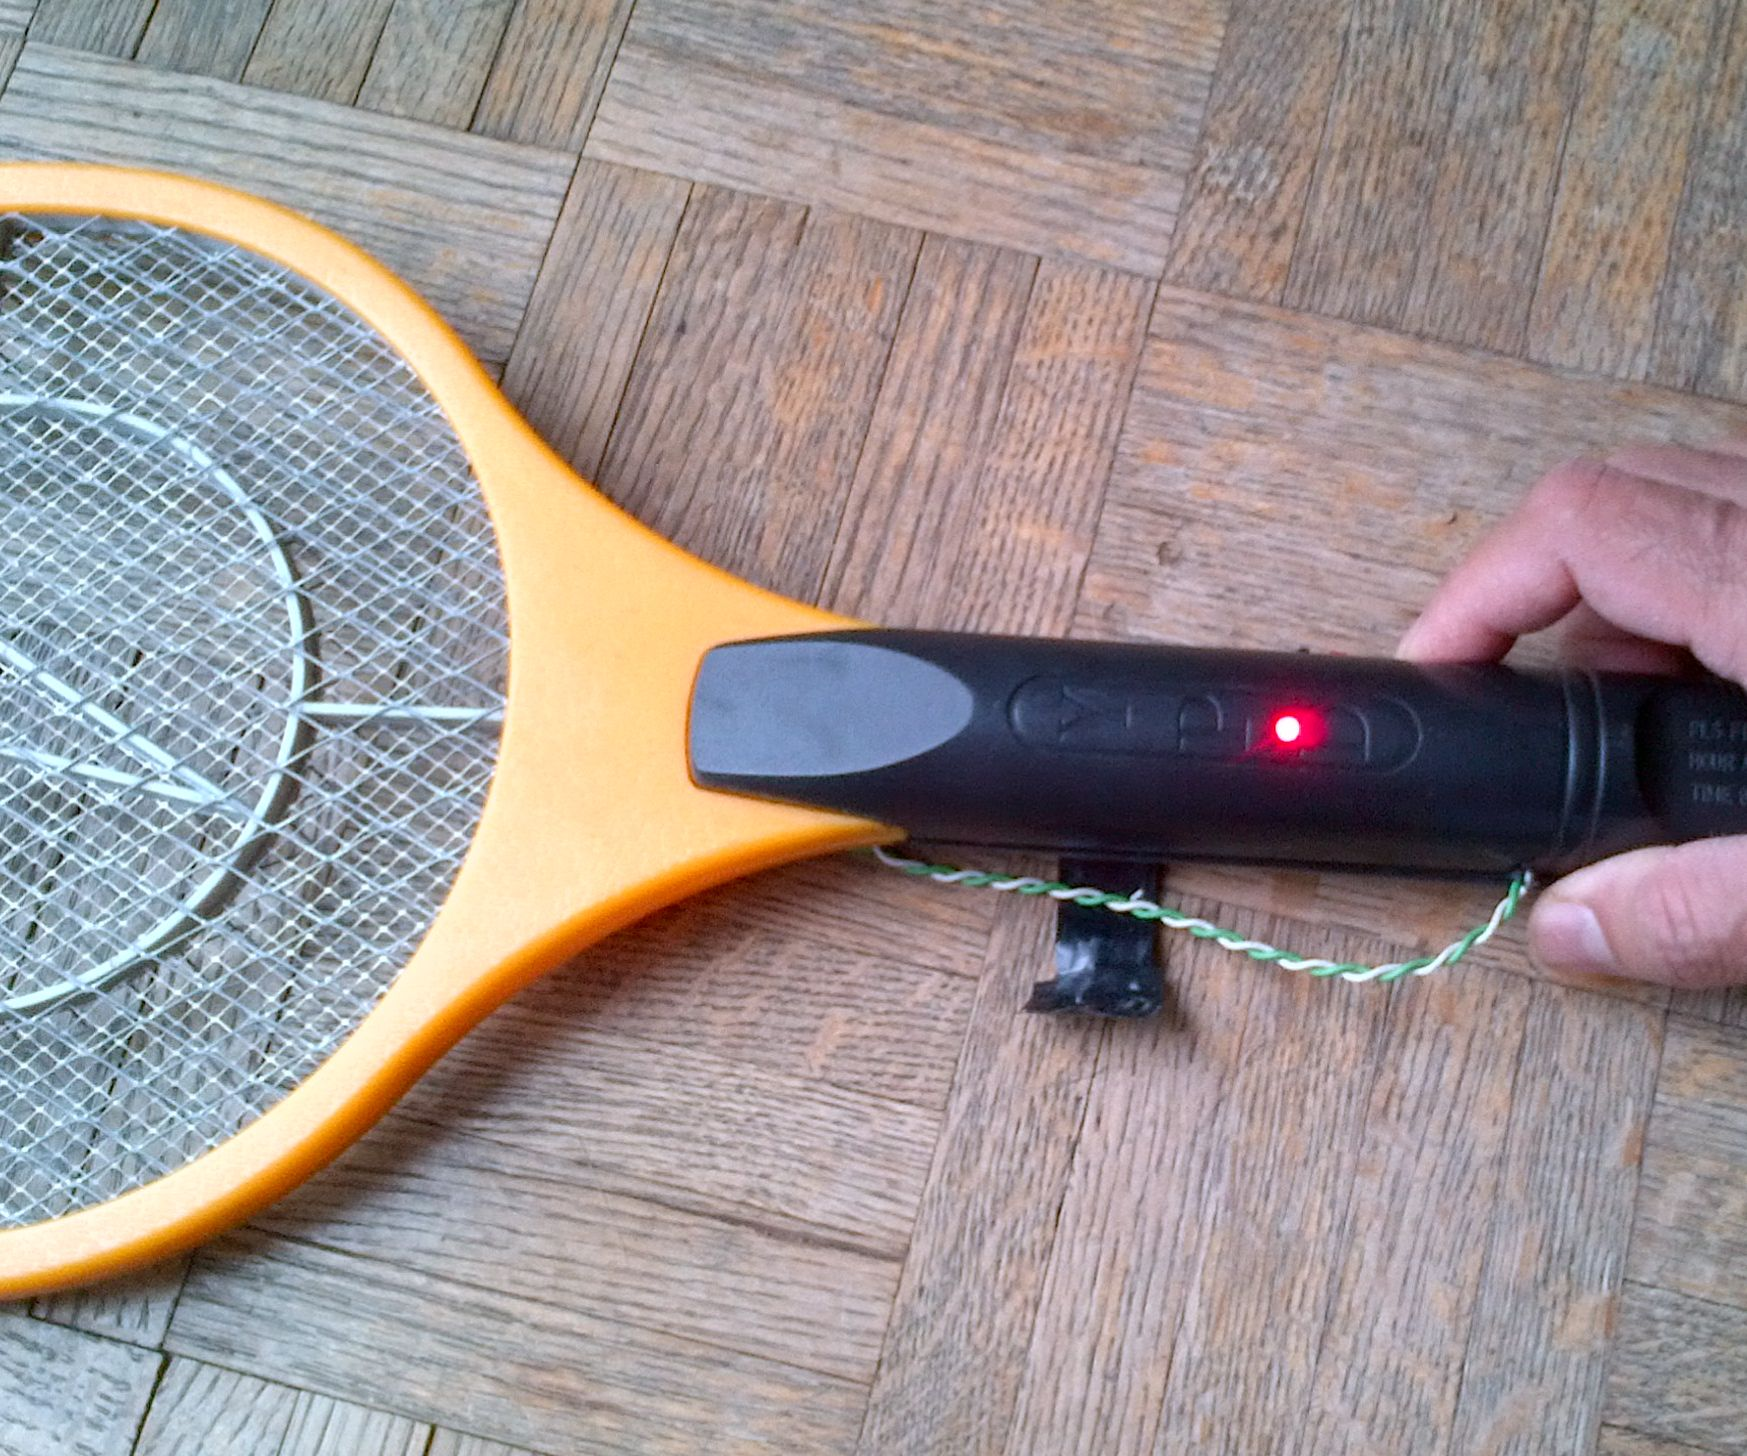 Bug Zapper Battery Replacement: 7 Steps